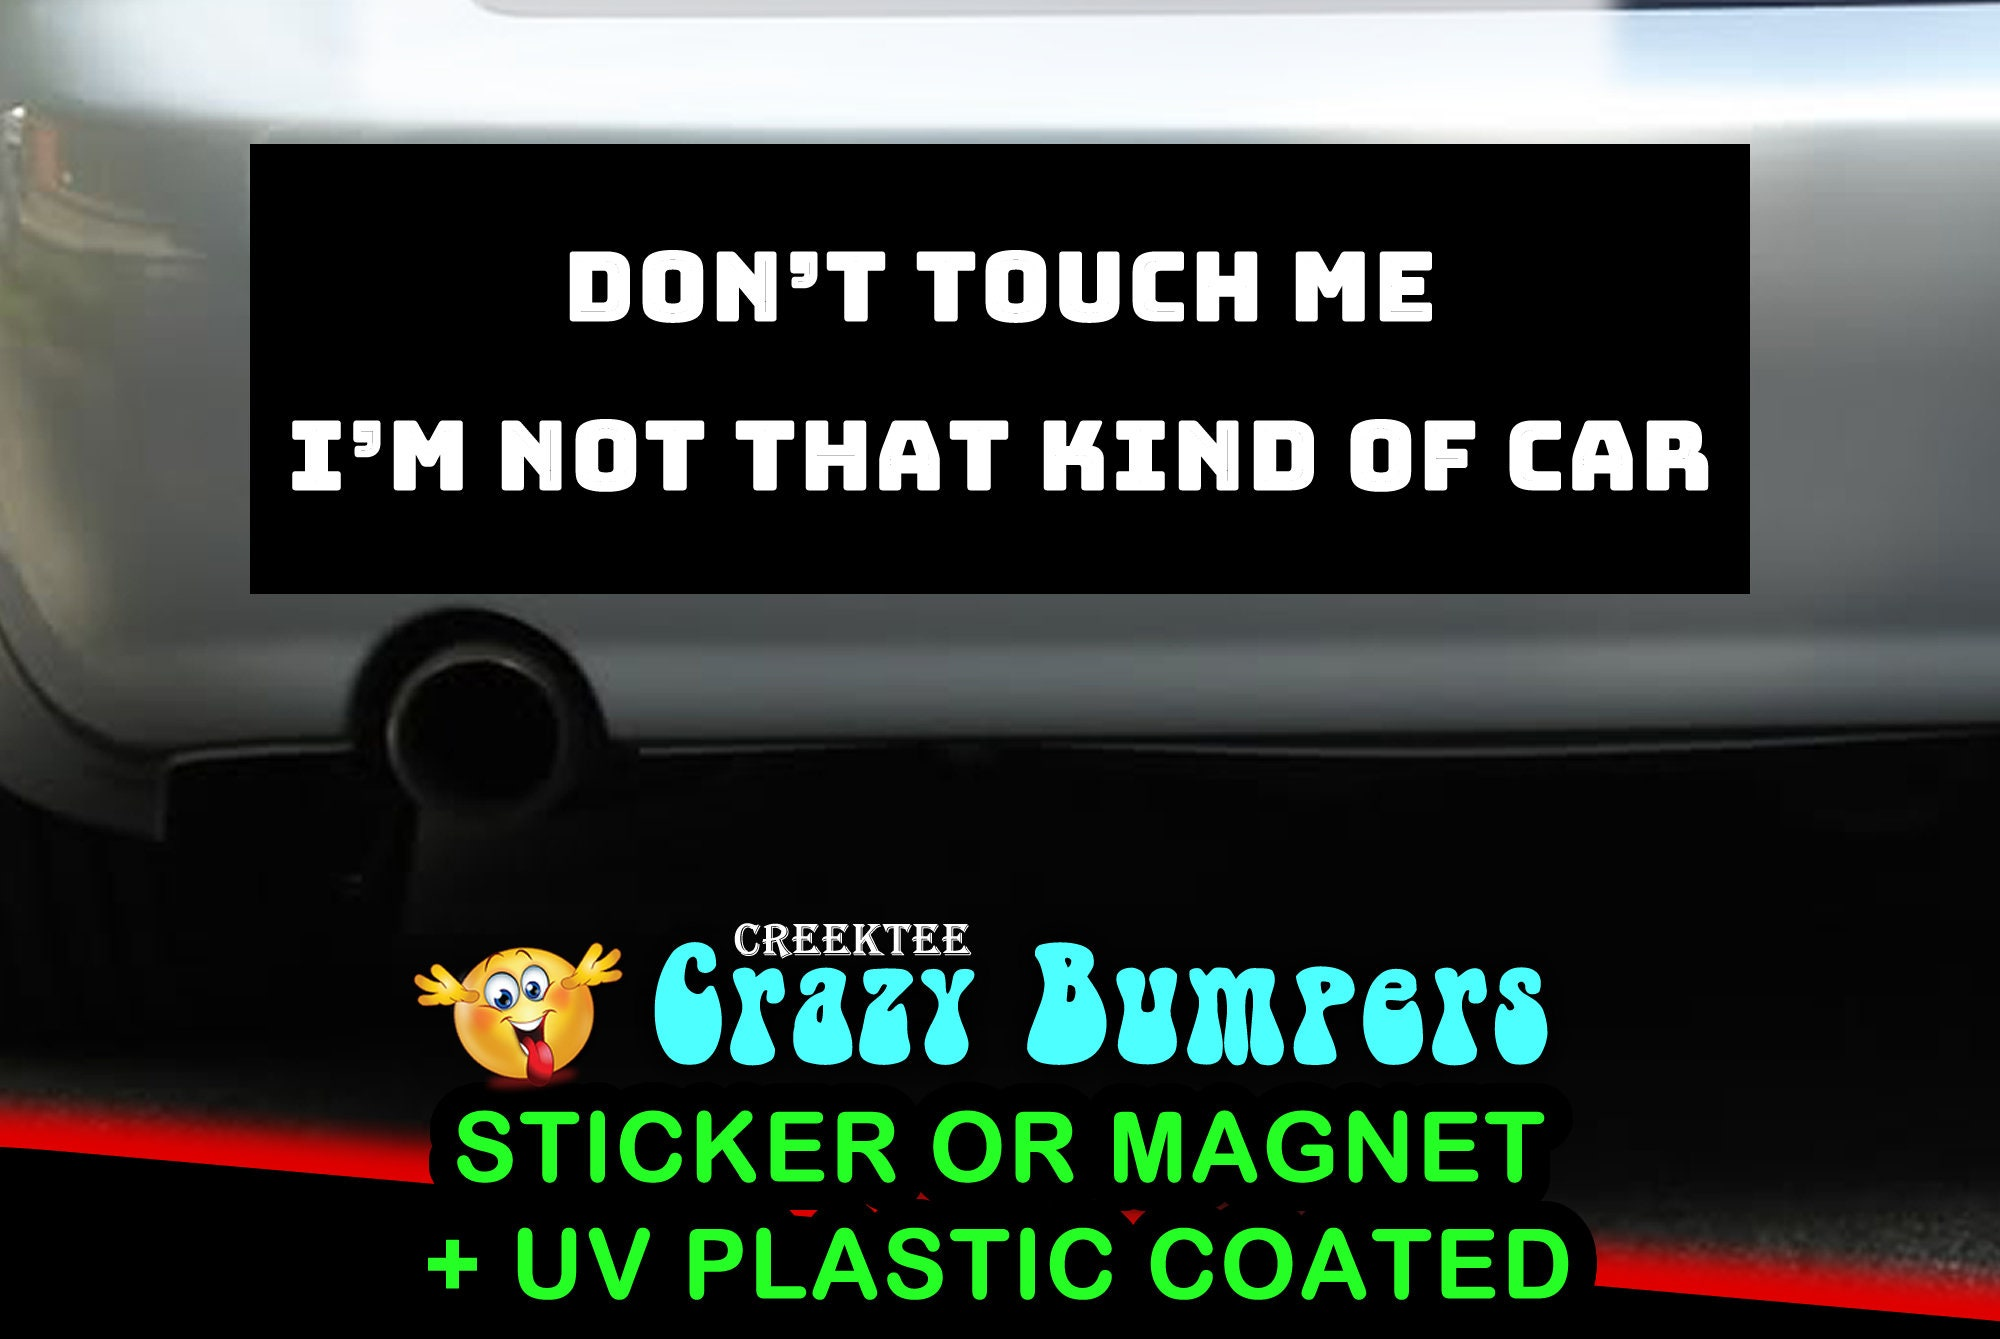 CAD$8.69 - Don't Touch Me I'm Not That Kind Of Car bumper sticker or magnet, 9 x 2.7 or 10 x 3 Sticker Magnet or bumper sticker or bumper magnet